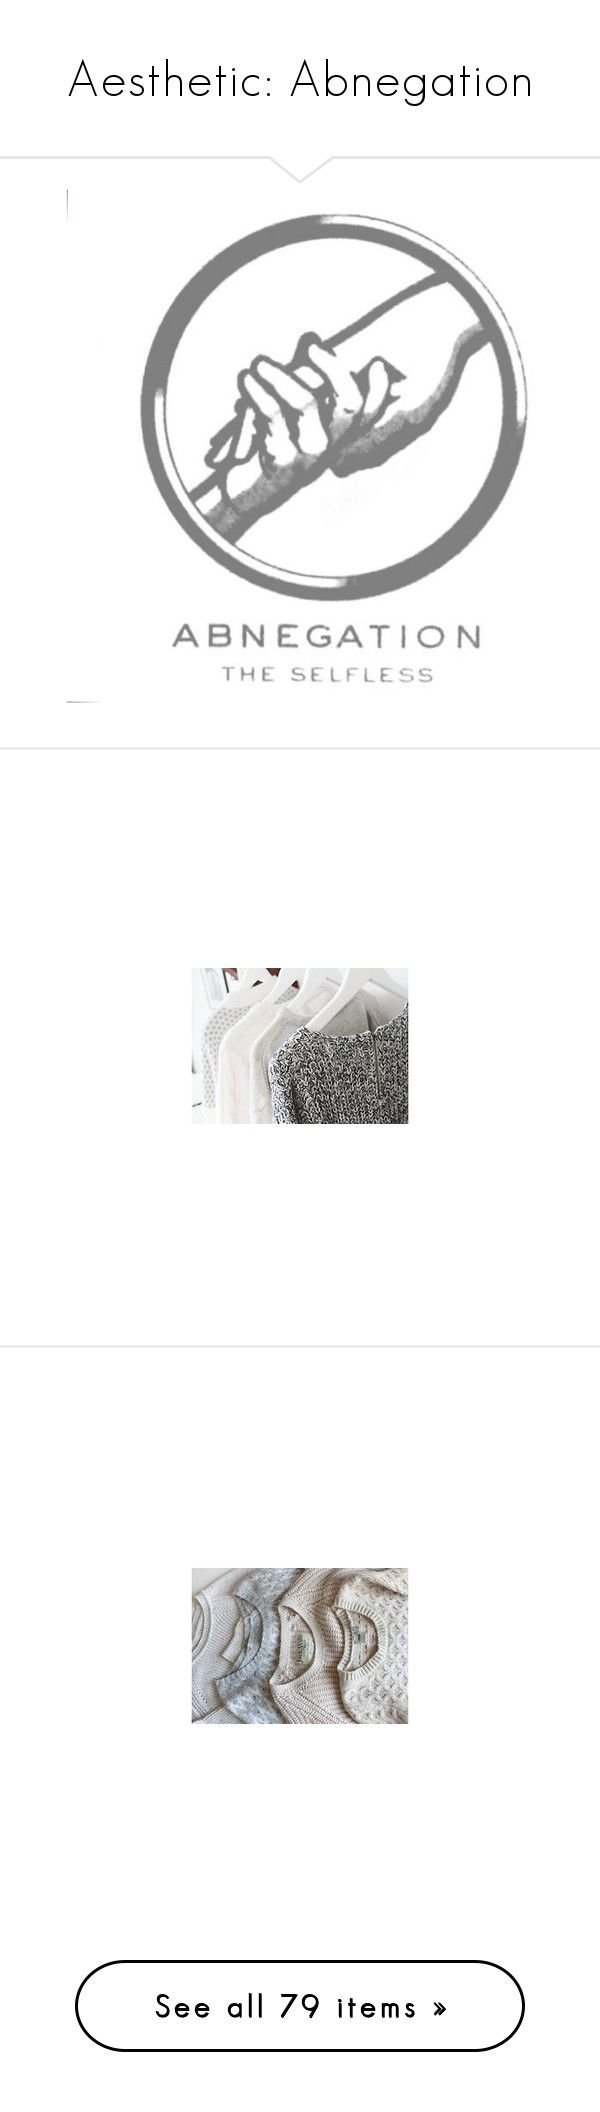 """""""Aesthetic: Abnegation"""" by lindsayisamermaid ❤ liked on Polyvore featuring sliki, pictures, divergent, hair, abnegation, backgrounds, quotes, text, phrase and saying"""